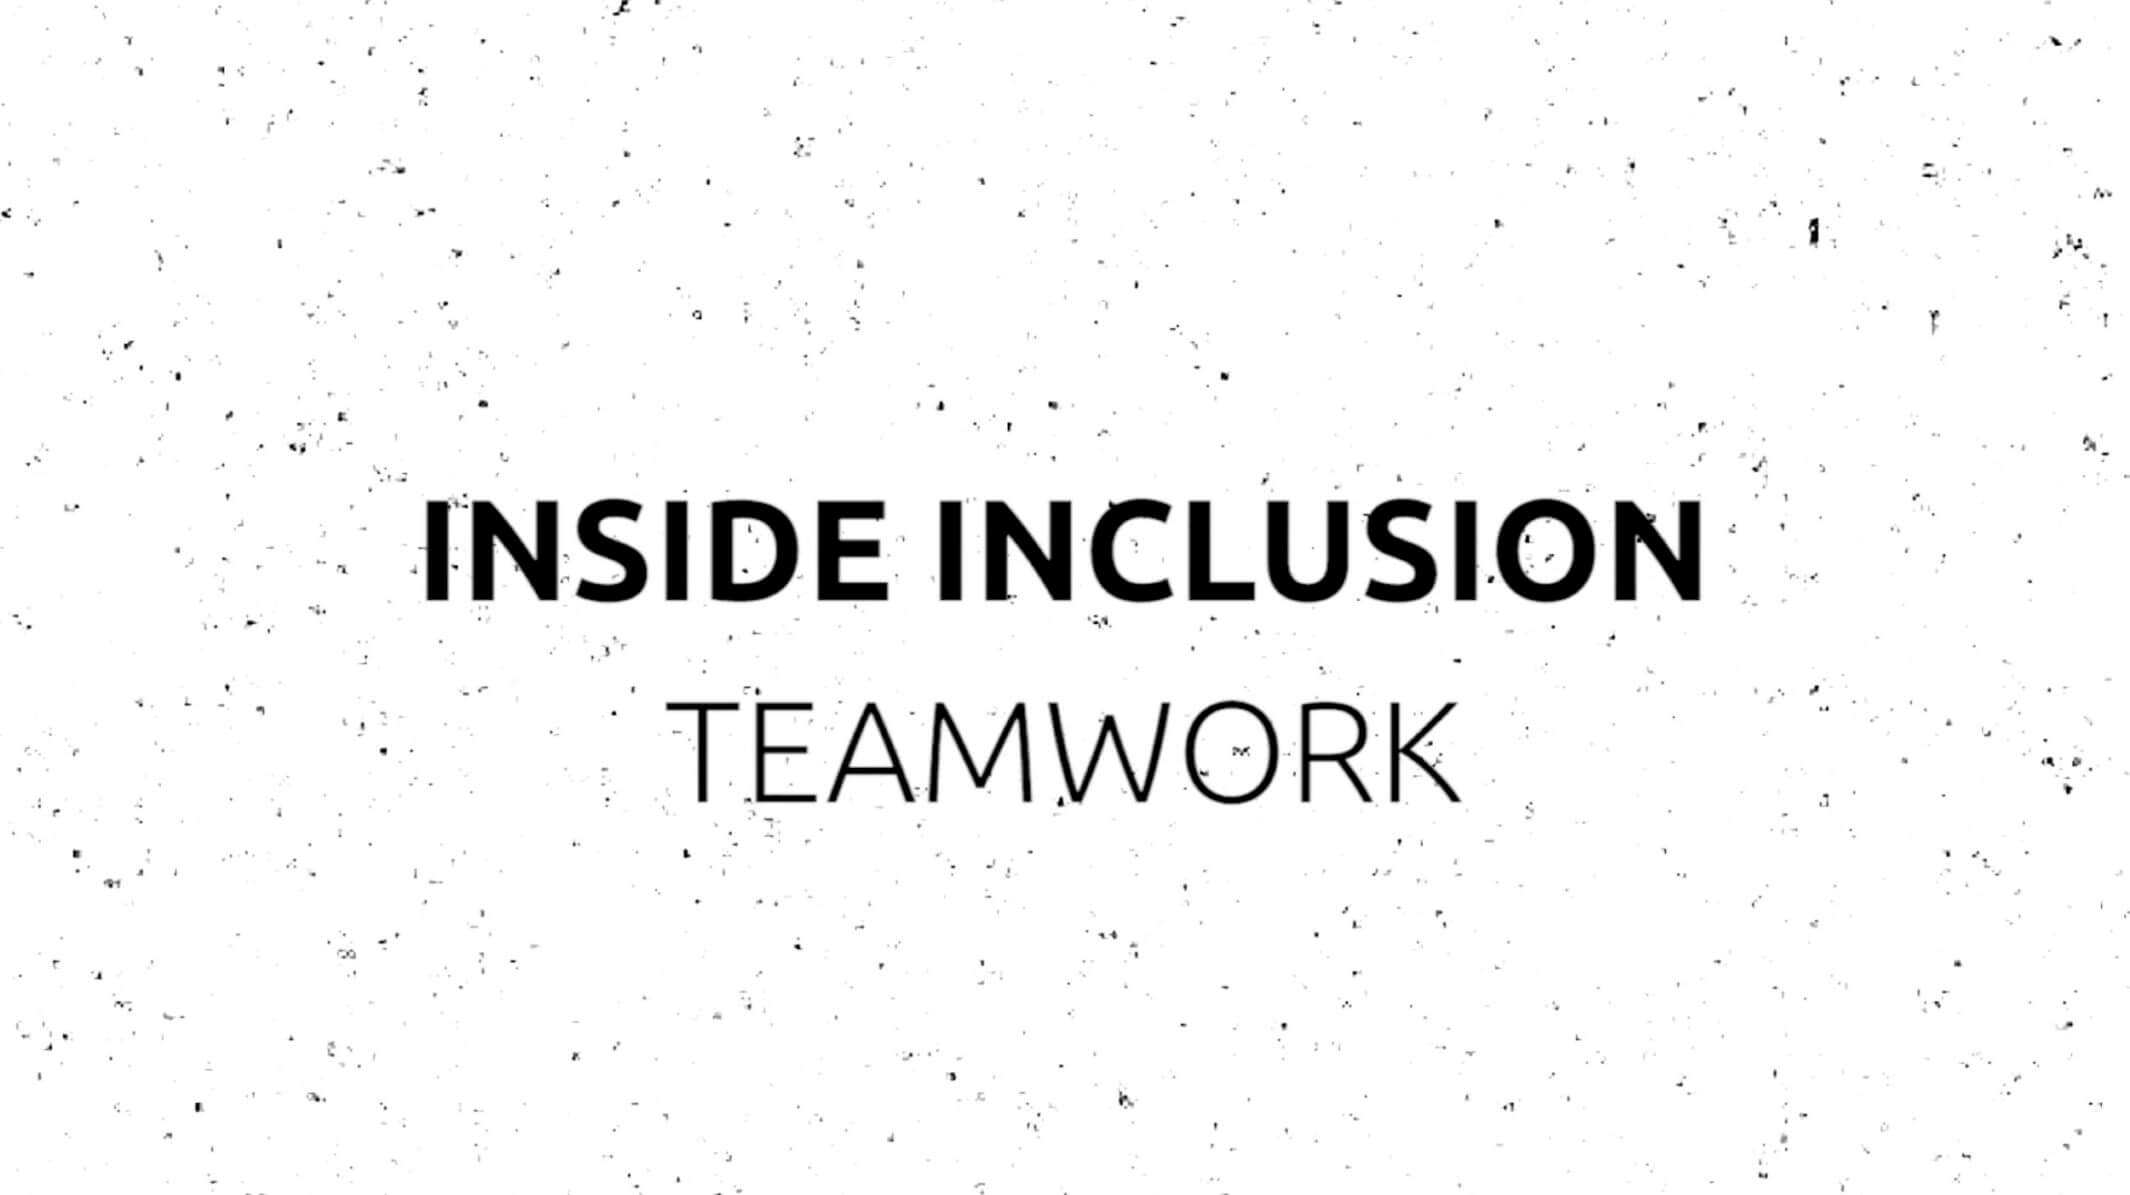 Inside Inclusion: Teamwork